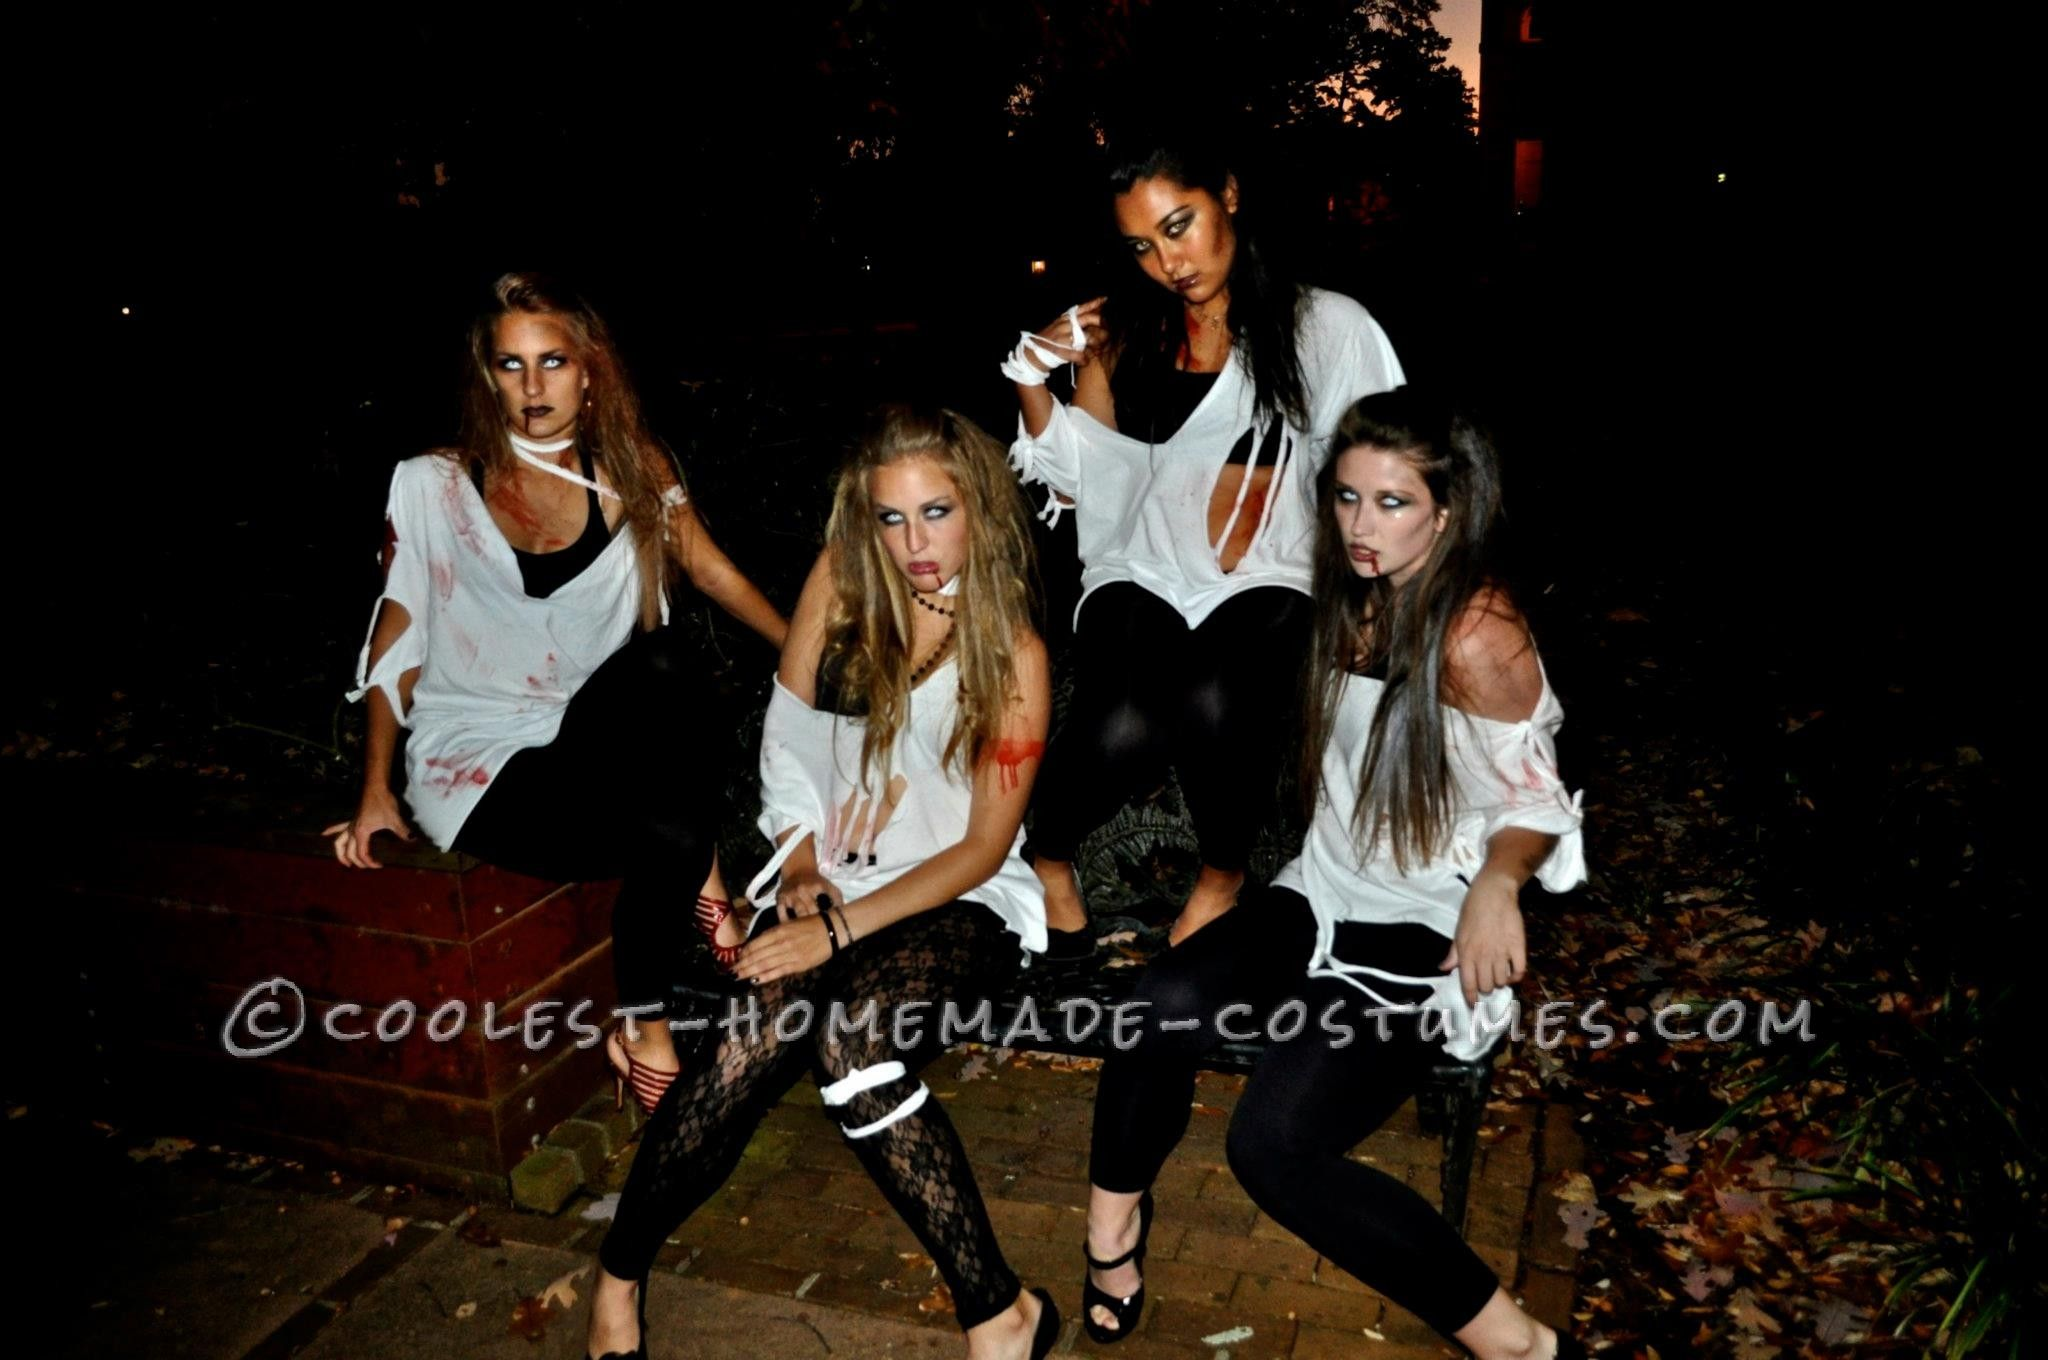 Coolest 1000 homemade costumes you can make girl group costumes easy last minute college girl group costume sexy zombies this website solutioingenieria Image collections